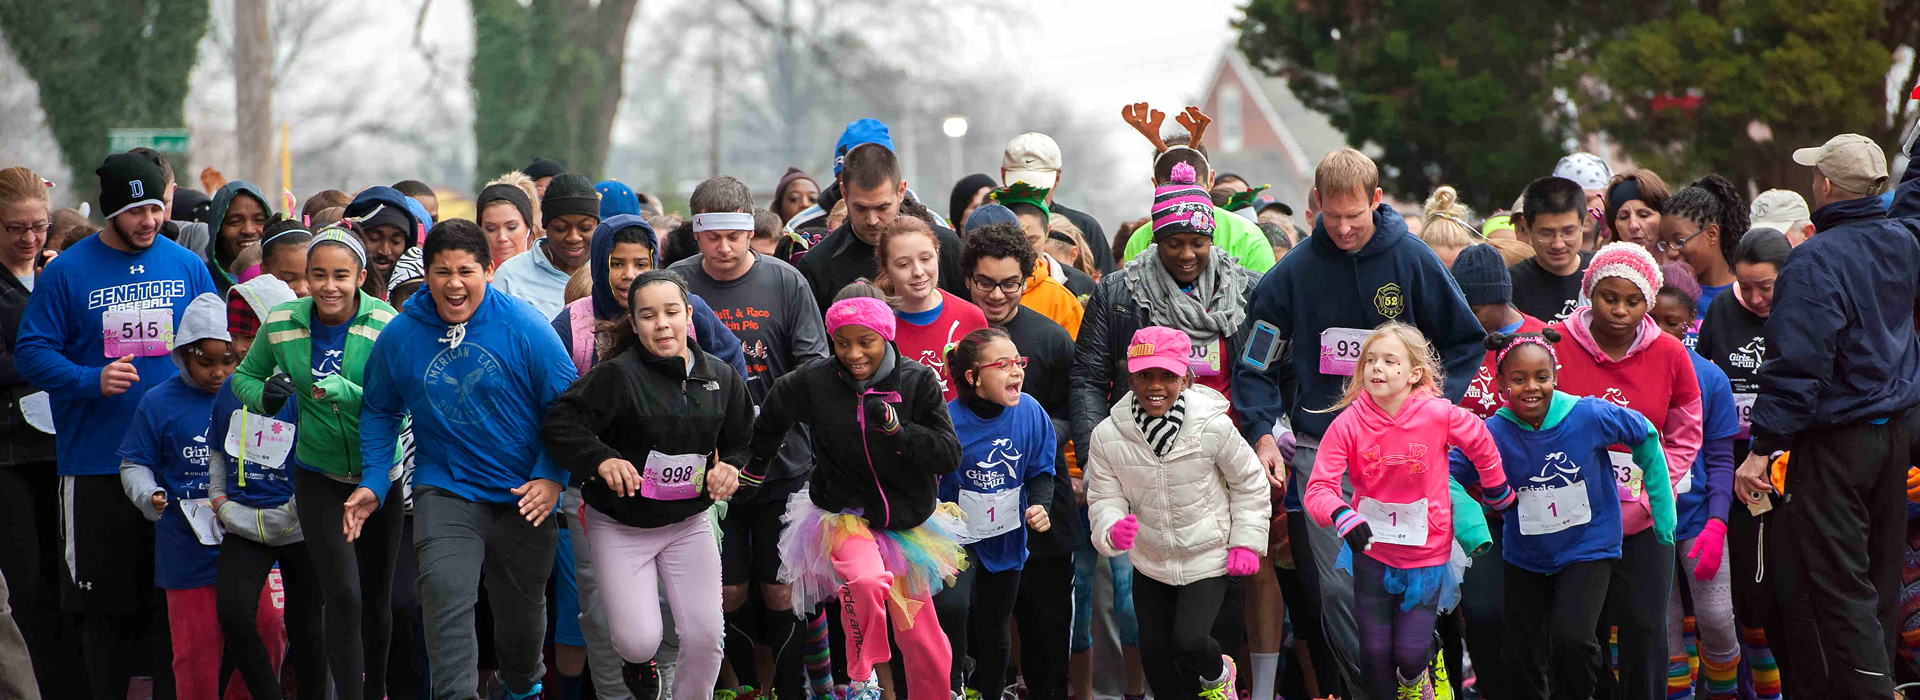 Girls on the Run pack demonstrates the passion of Santora CPA employees in support of nonprofits and associations